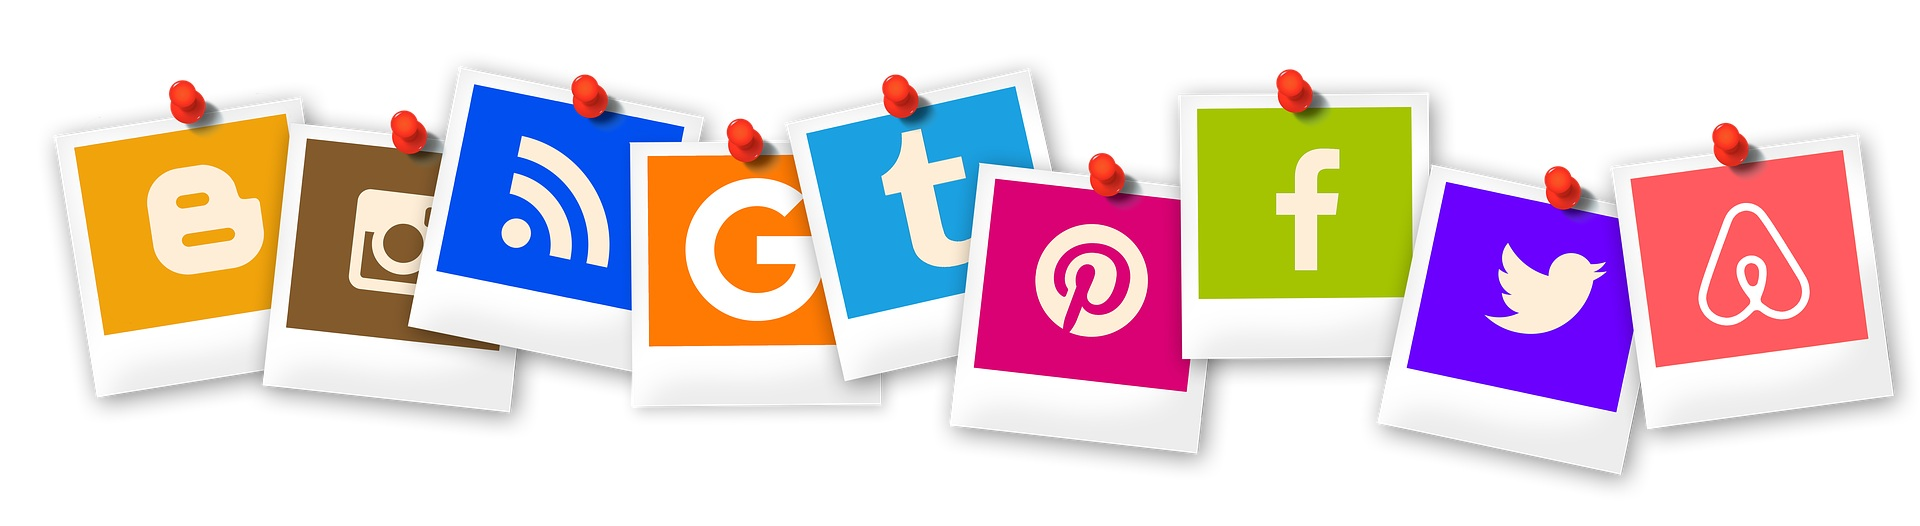 Social media for business icons